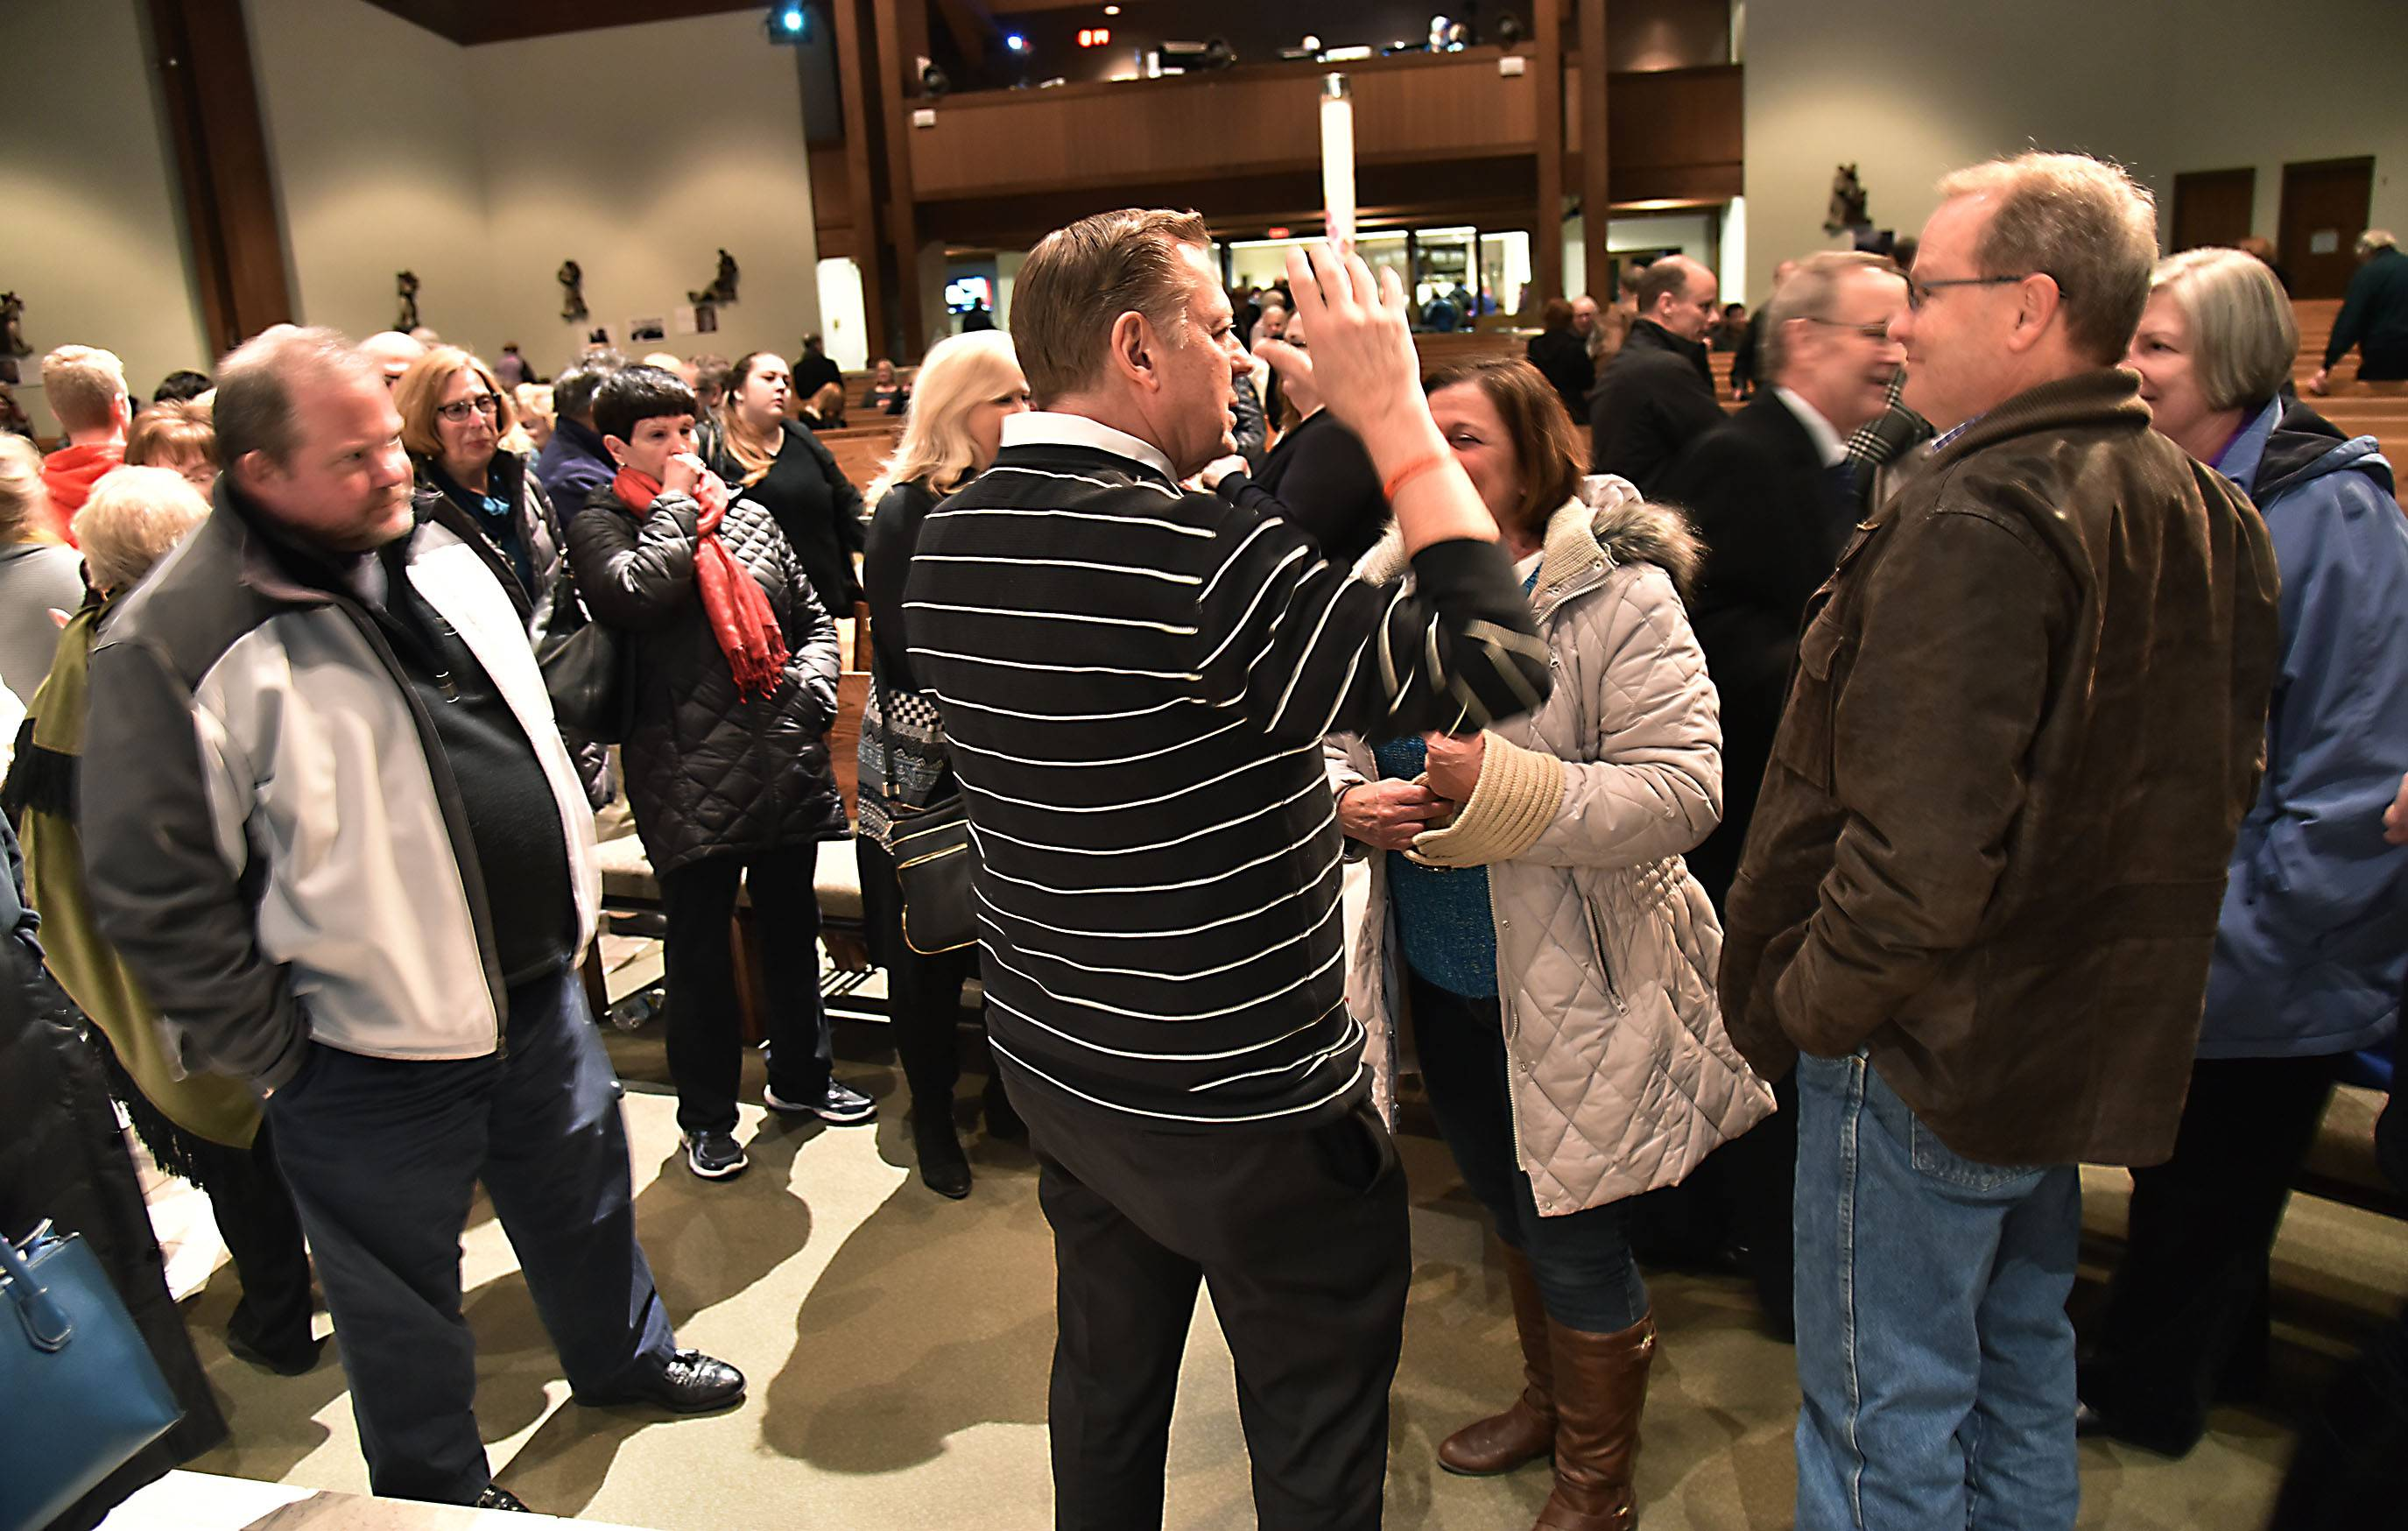 Chicago activist priest Michael Pfleger is surrounded by parishioners Thursday evening after he spoke at Holy Family Catholic Community in Inverness. Pfleger, pastor of the Faith Community of St. Sabina on the city's south side, discussed inner city violence and other issues.